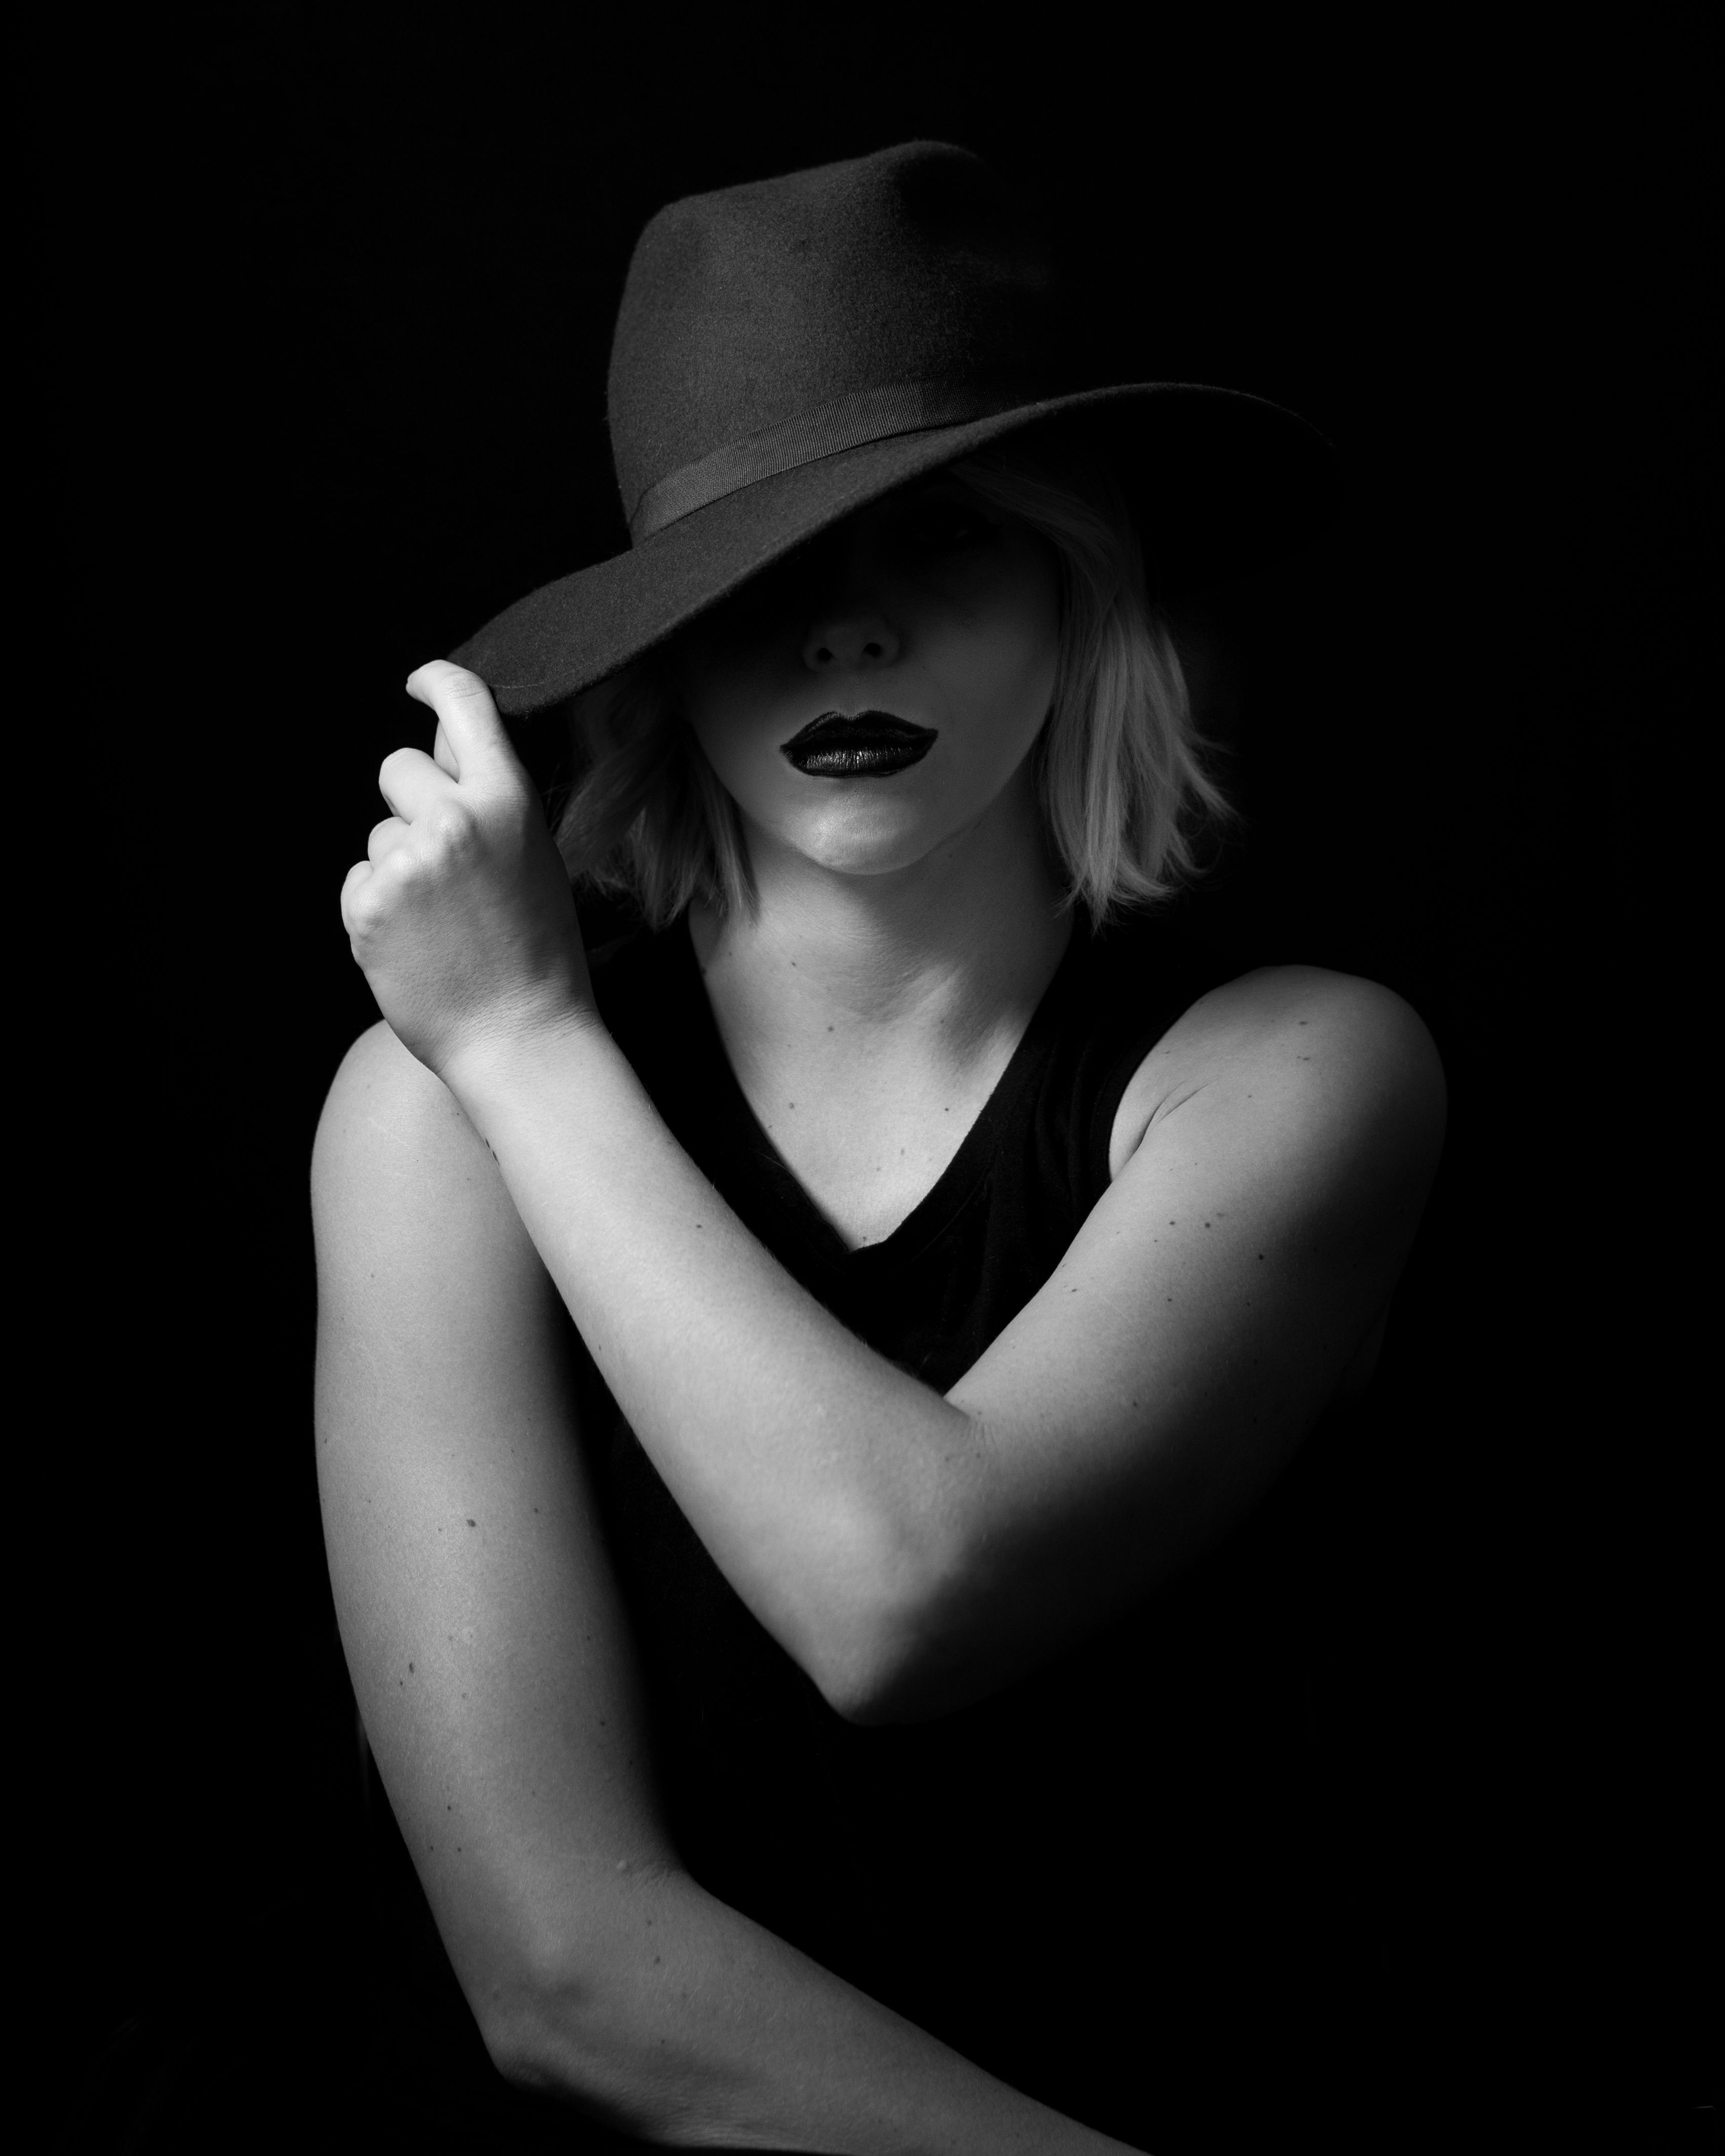 High contrast black and white female portrait woman with hat face partially obscured by shadow